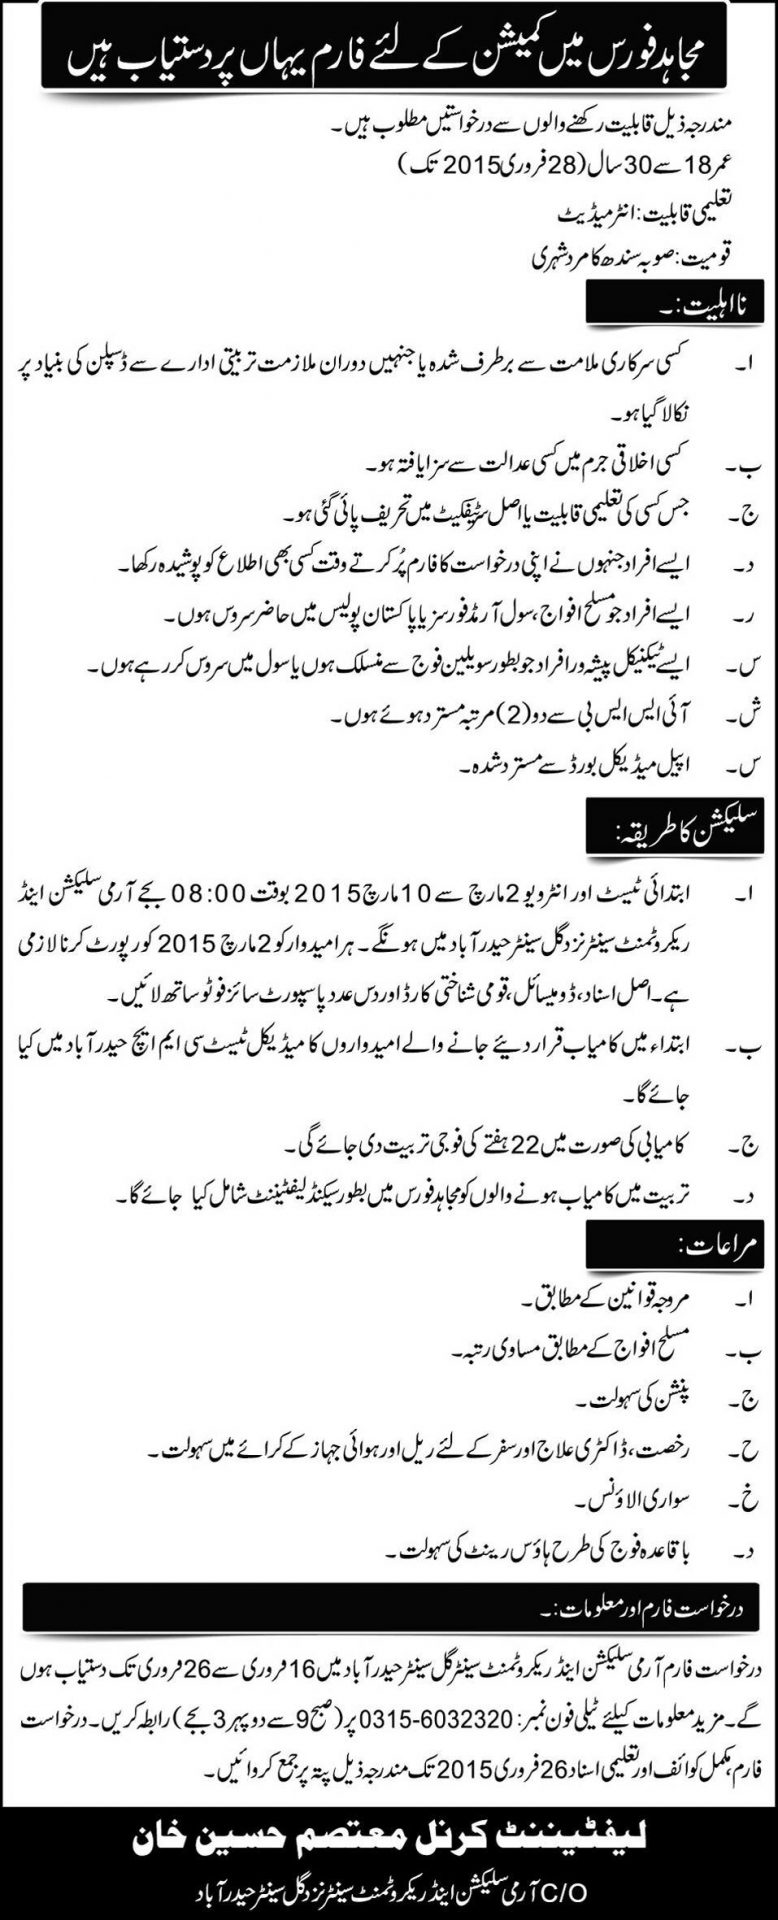 Join Mujahid Force As Commissioned Officer 2015 Application Form Last Date